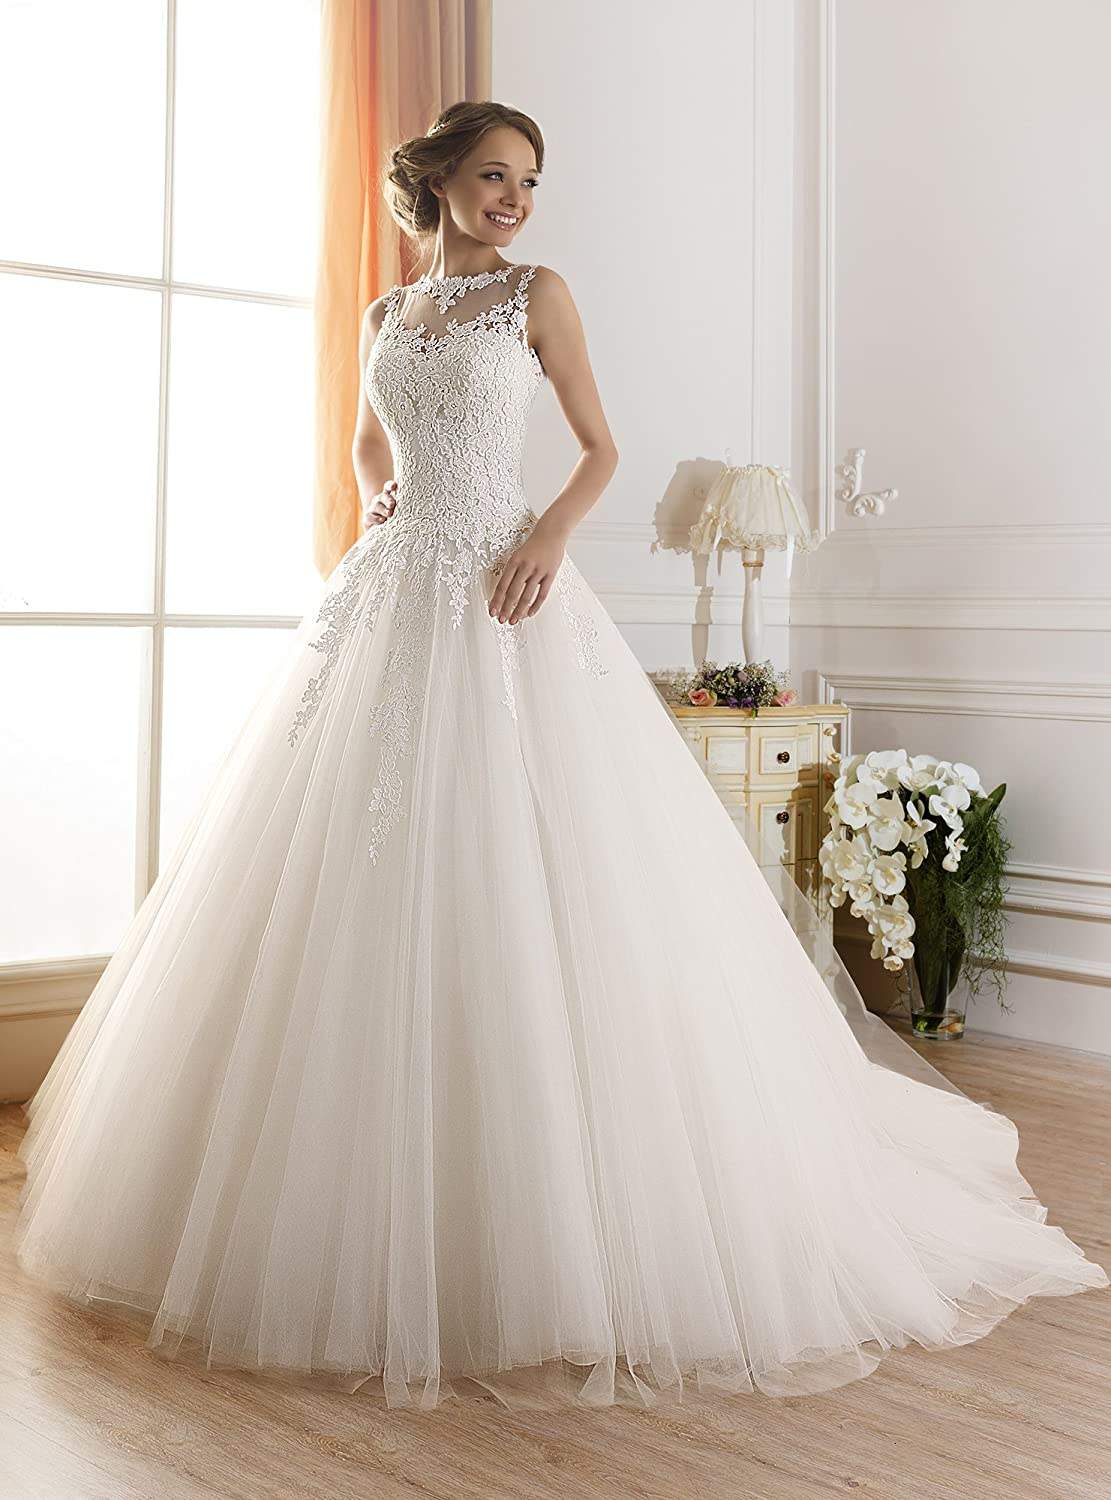 Tbb illusion lace ball gown casamento elegant long wedding dresses tbb illusion lace ball gown casamento elegant long wedding dresses at amazon womens clothing store junglespirit Choice Image